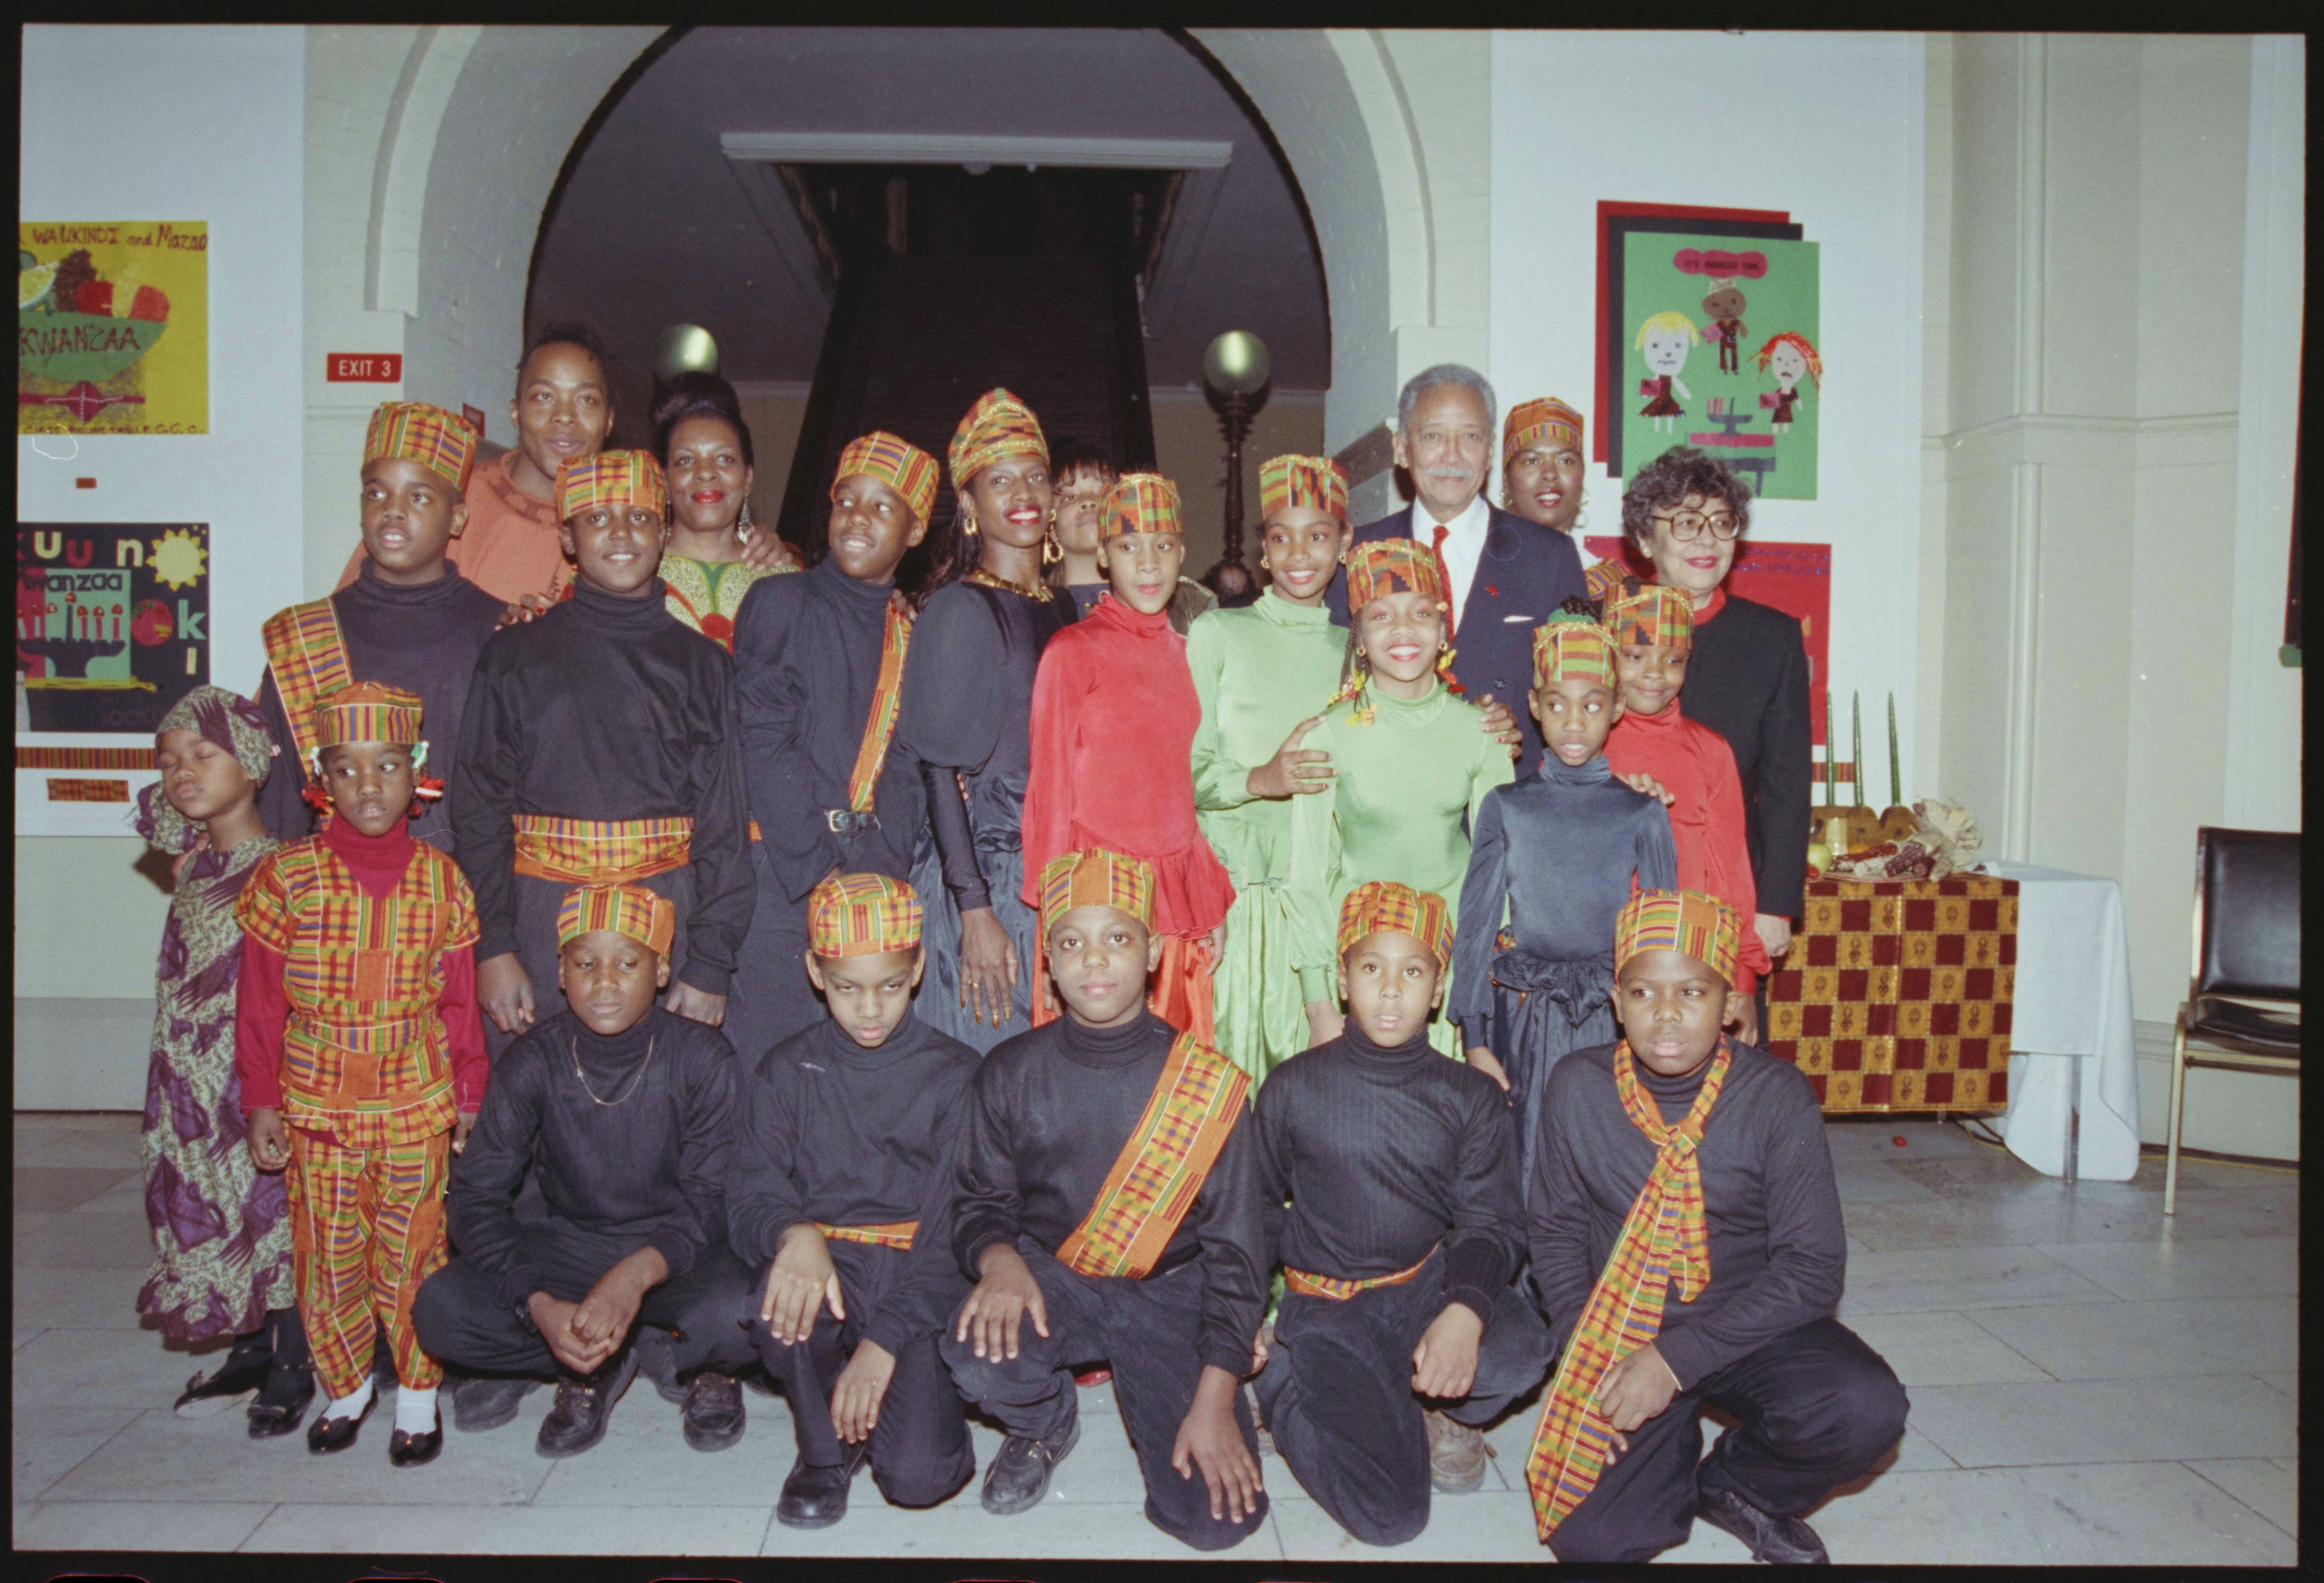 Kwanzaa takes place over 7 days from December 26th to January 1st, and celebrates 7 principles of African heritage. On December 28, 1992 Mayor Dinkins celebrated Kwanzaa with children from the Harlem School of the Arts and the Brownsville Child Development Center. Mayor Dinkins Collection, NYC Municipal Archives.